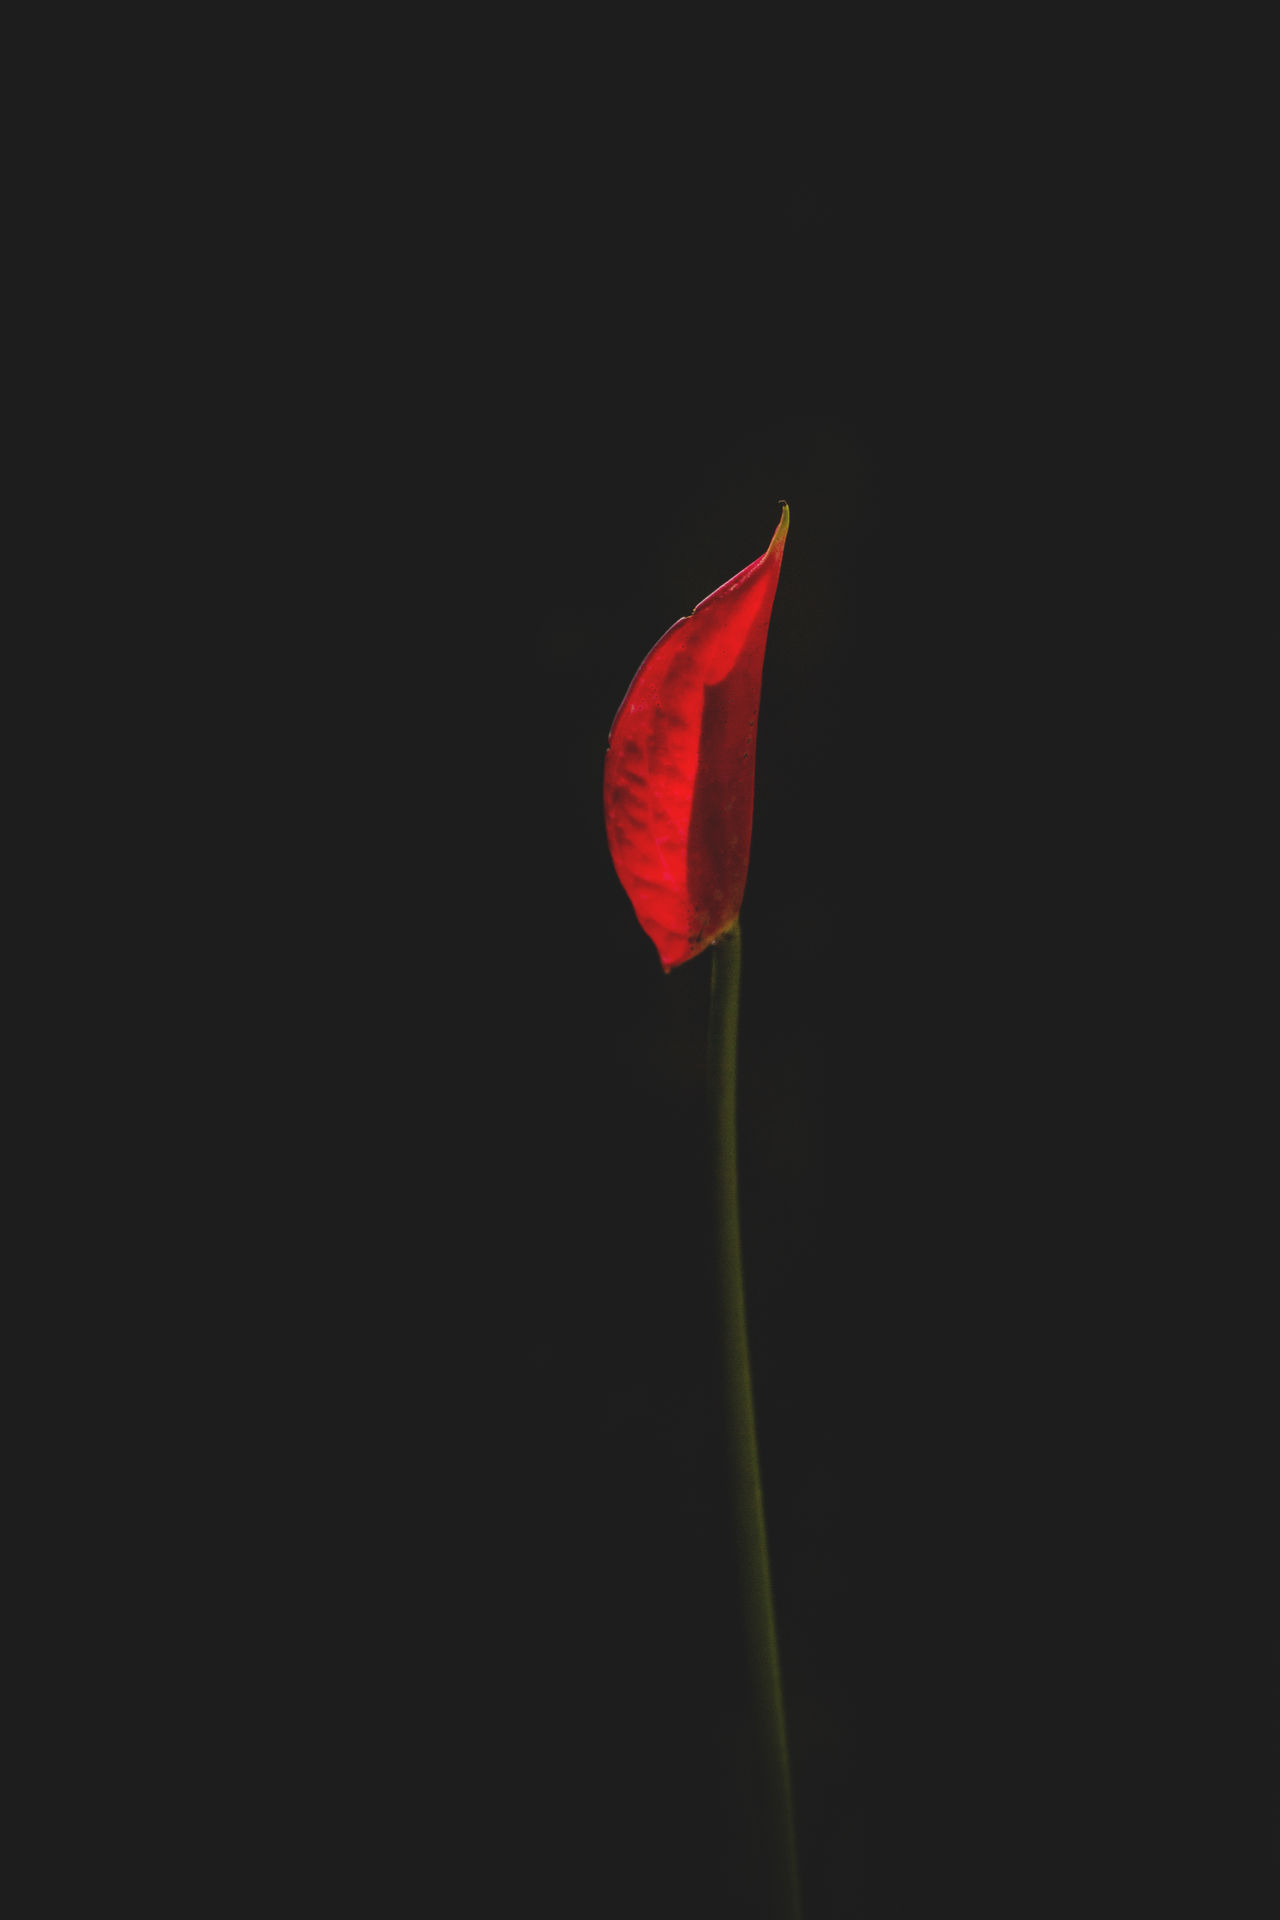 Black Background Budding Budding Flower Composition Dark EyeEm Best Shots EyeEm Nature Lover Flag Flower Fluttering Fragility Fresh Identity Natural Light Nature Red Red Red Flower Simplicity Springtime Tranquility